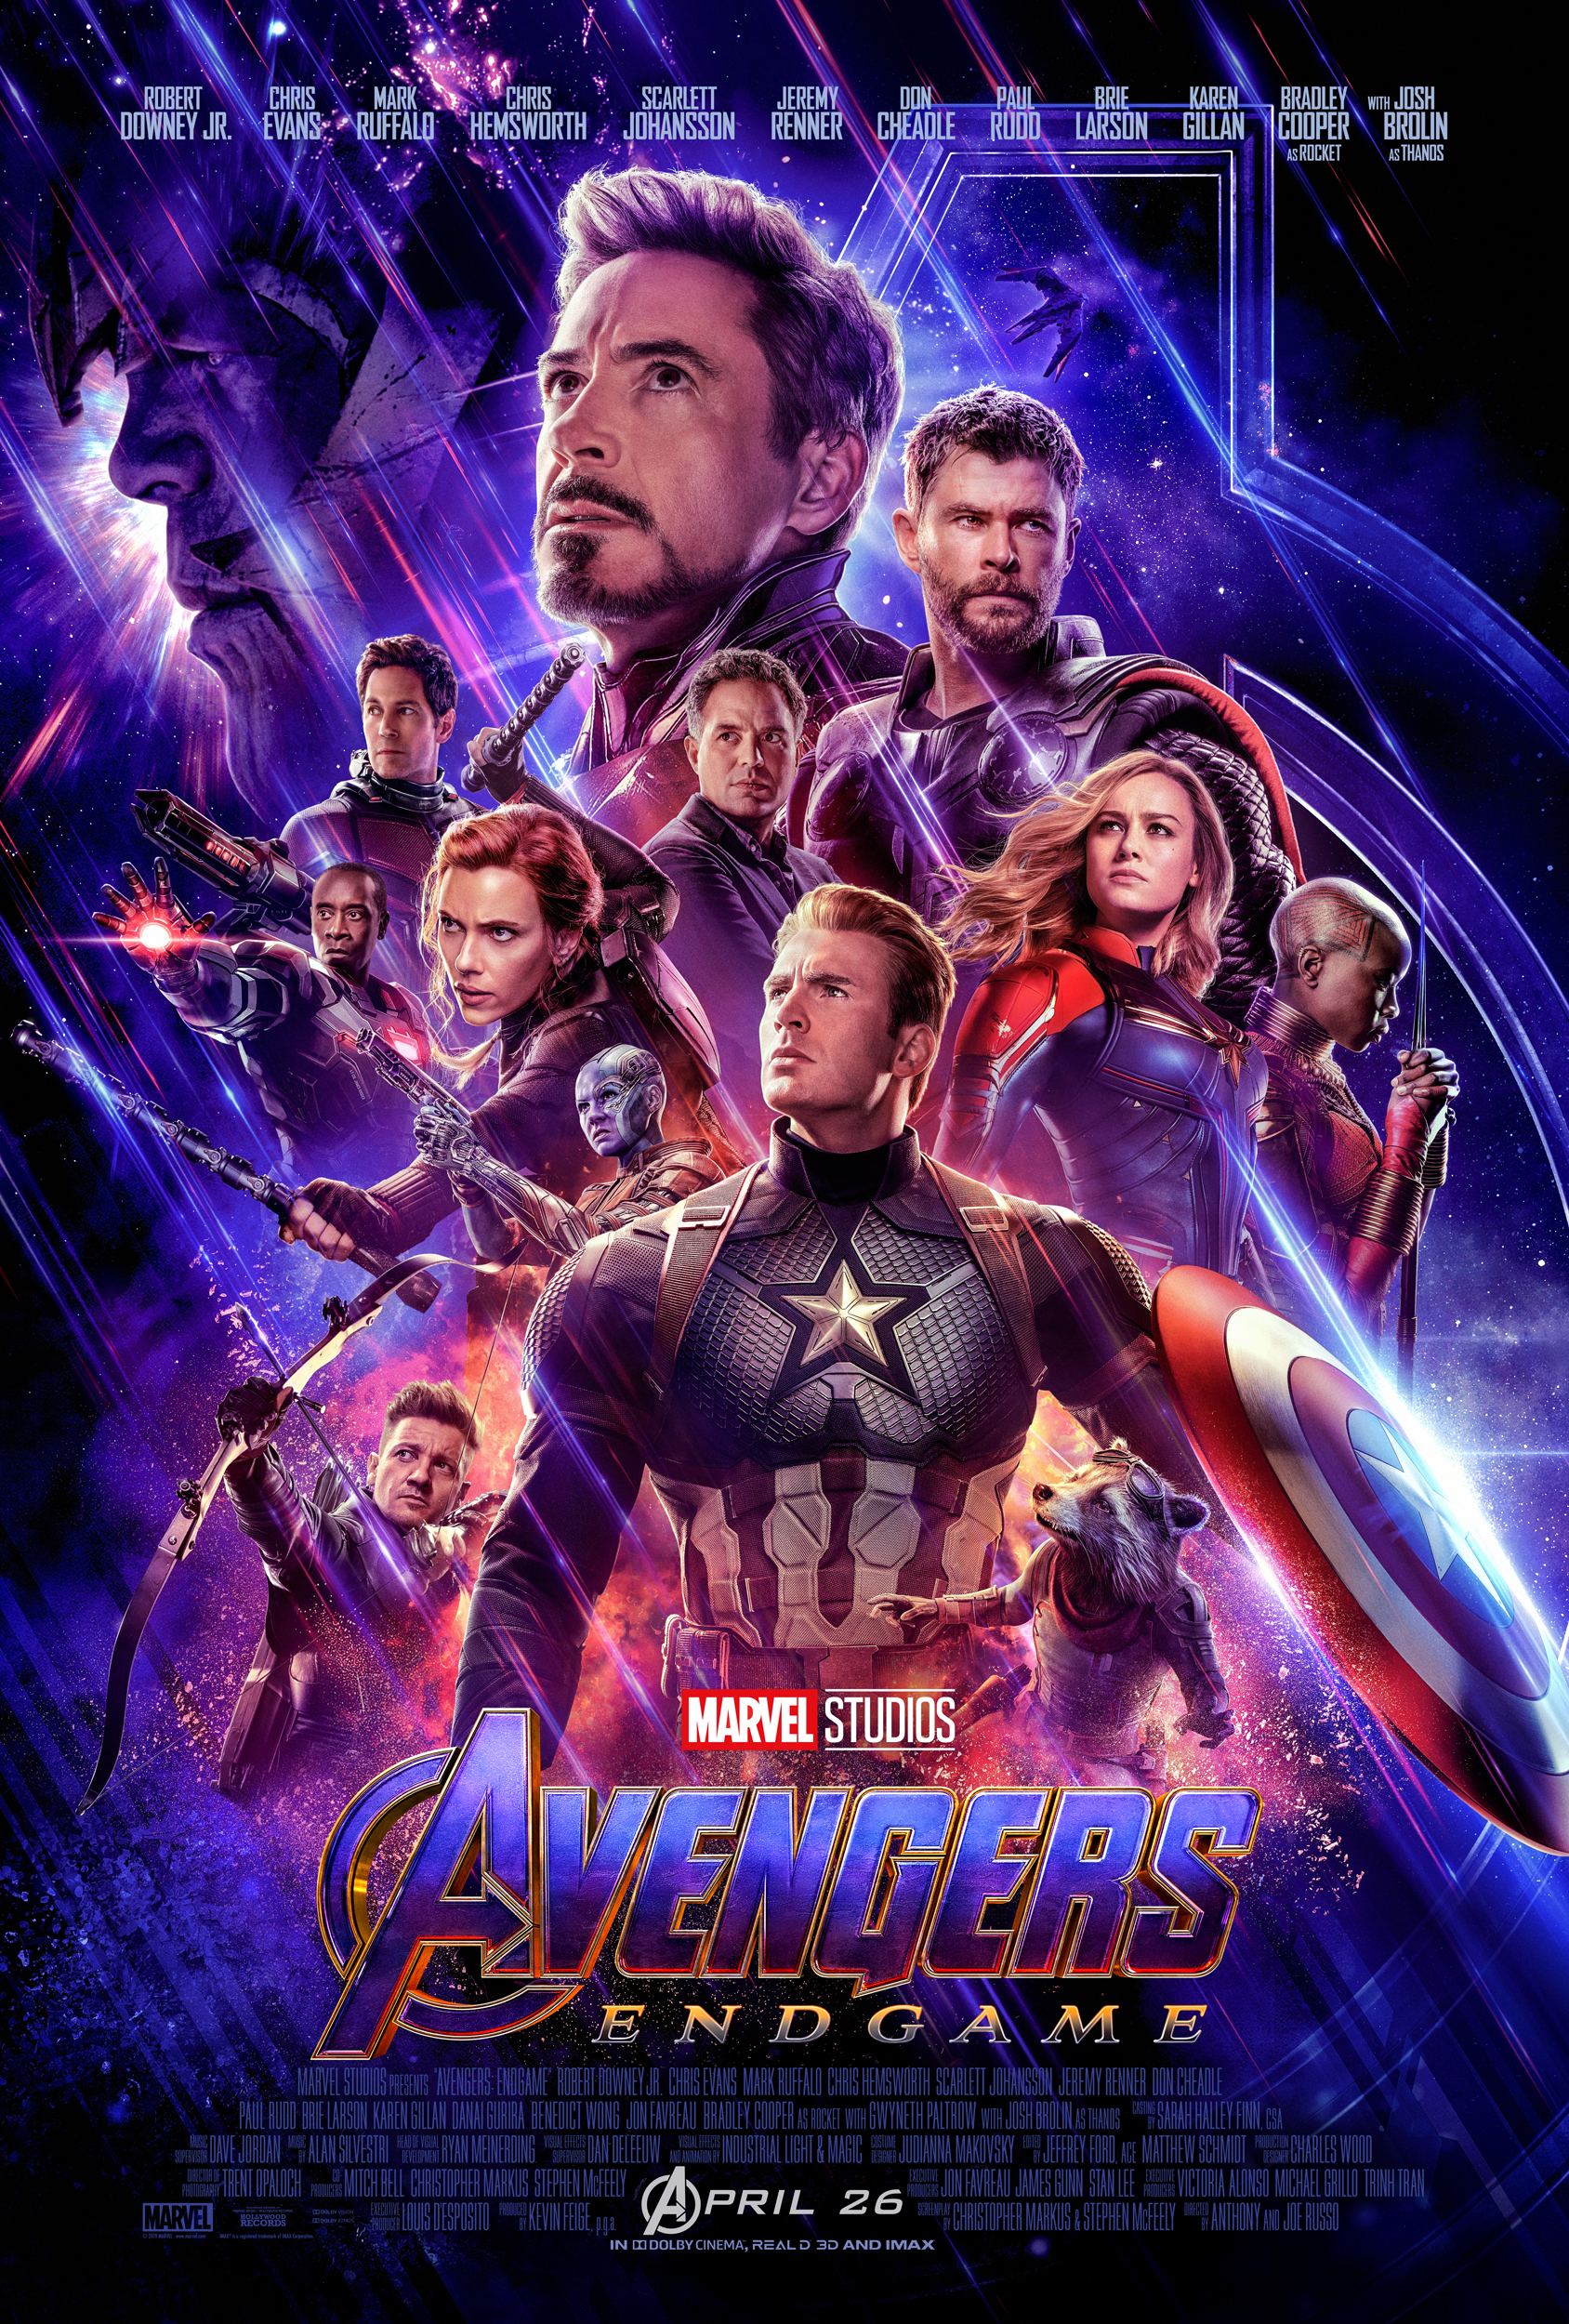 We Finally Have an Official Trailer for Avengers: Endgame!!